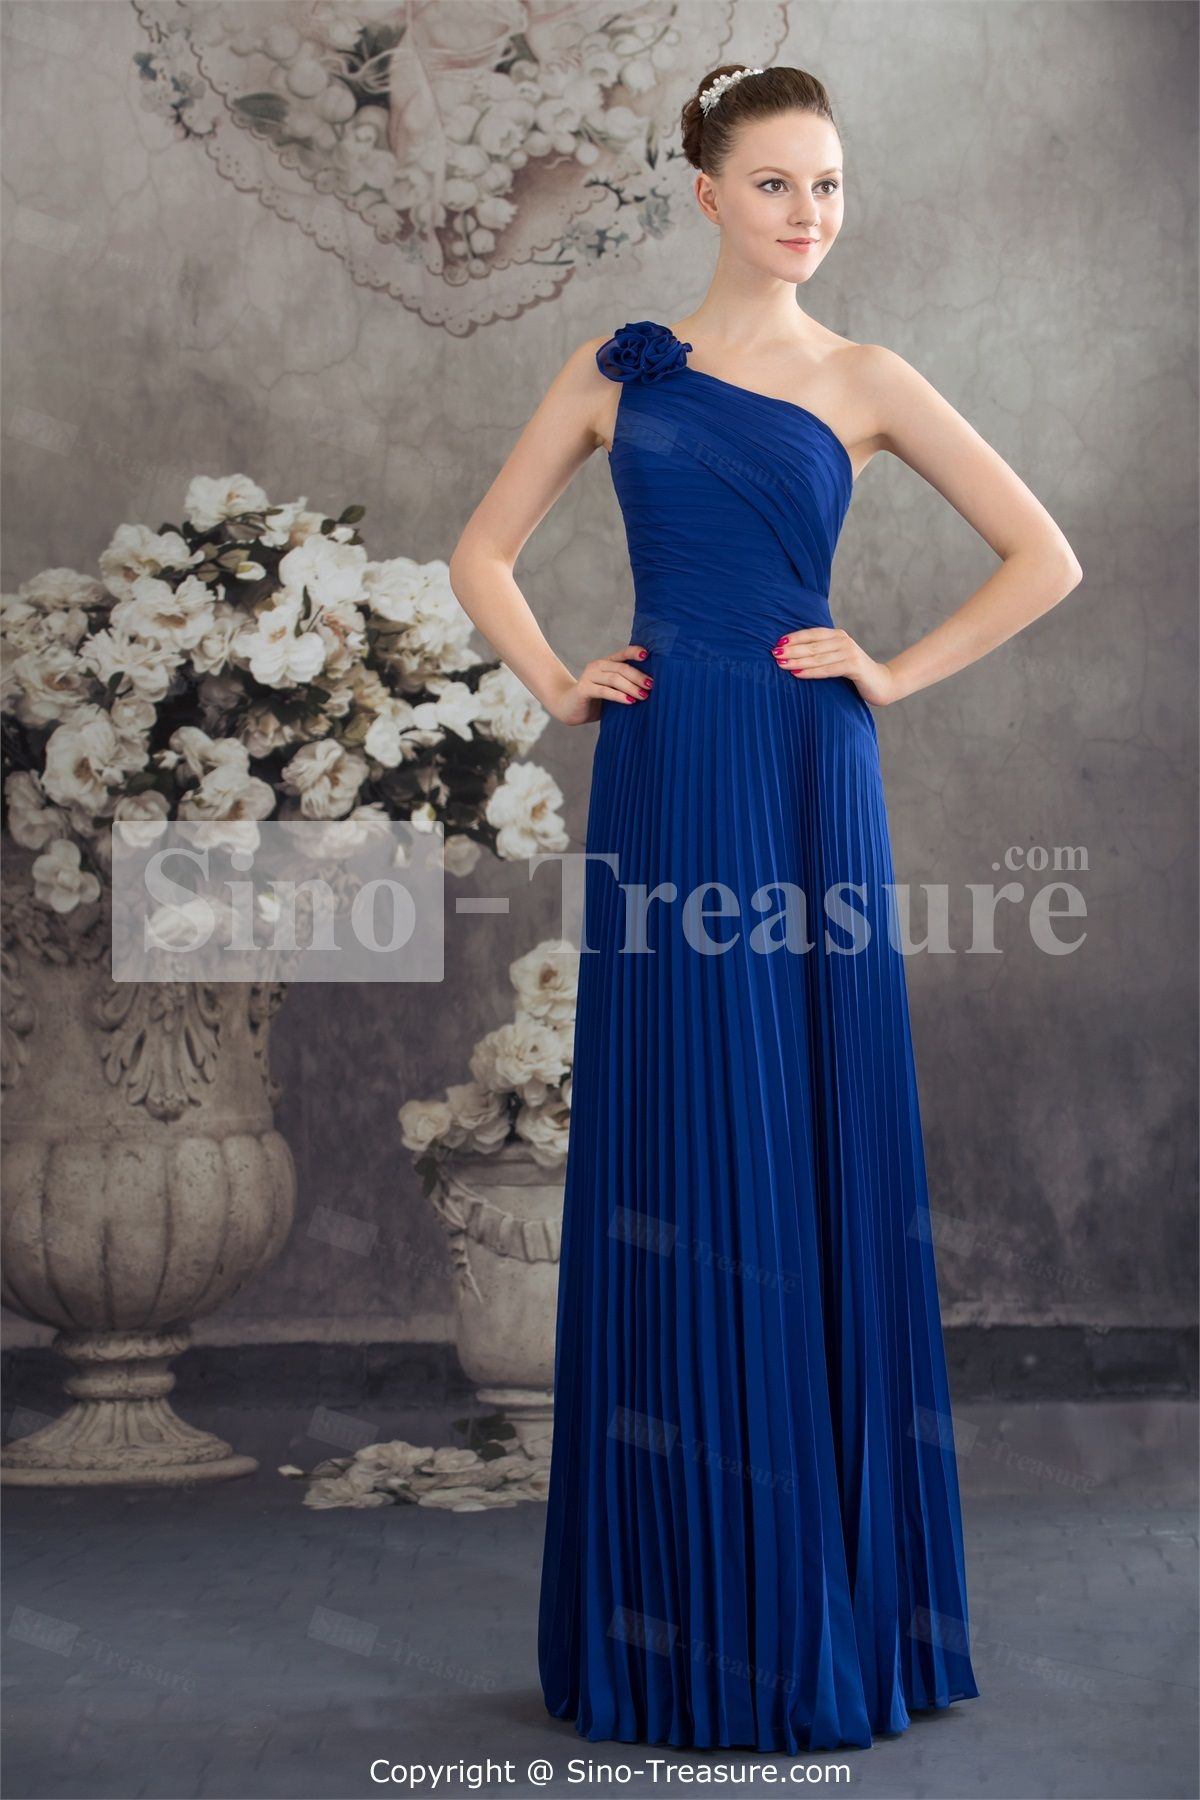 bridesmaid dresses silver and blue royal blue wedding dresses Bridesmaid Dresses Silver And Blue